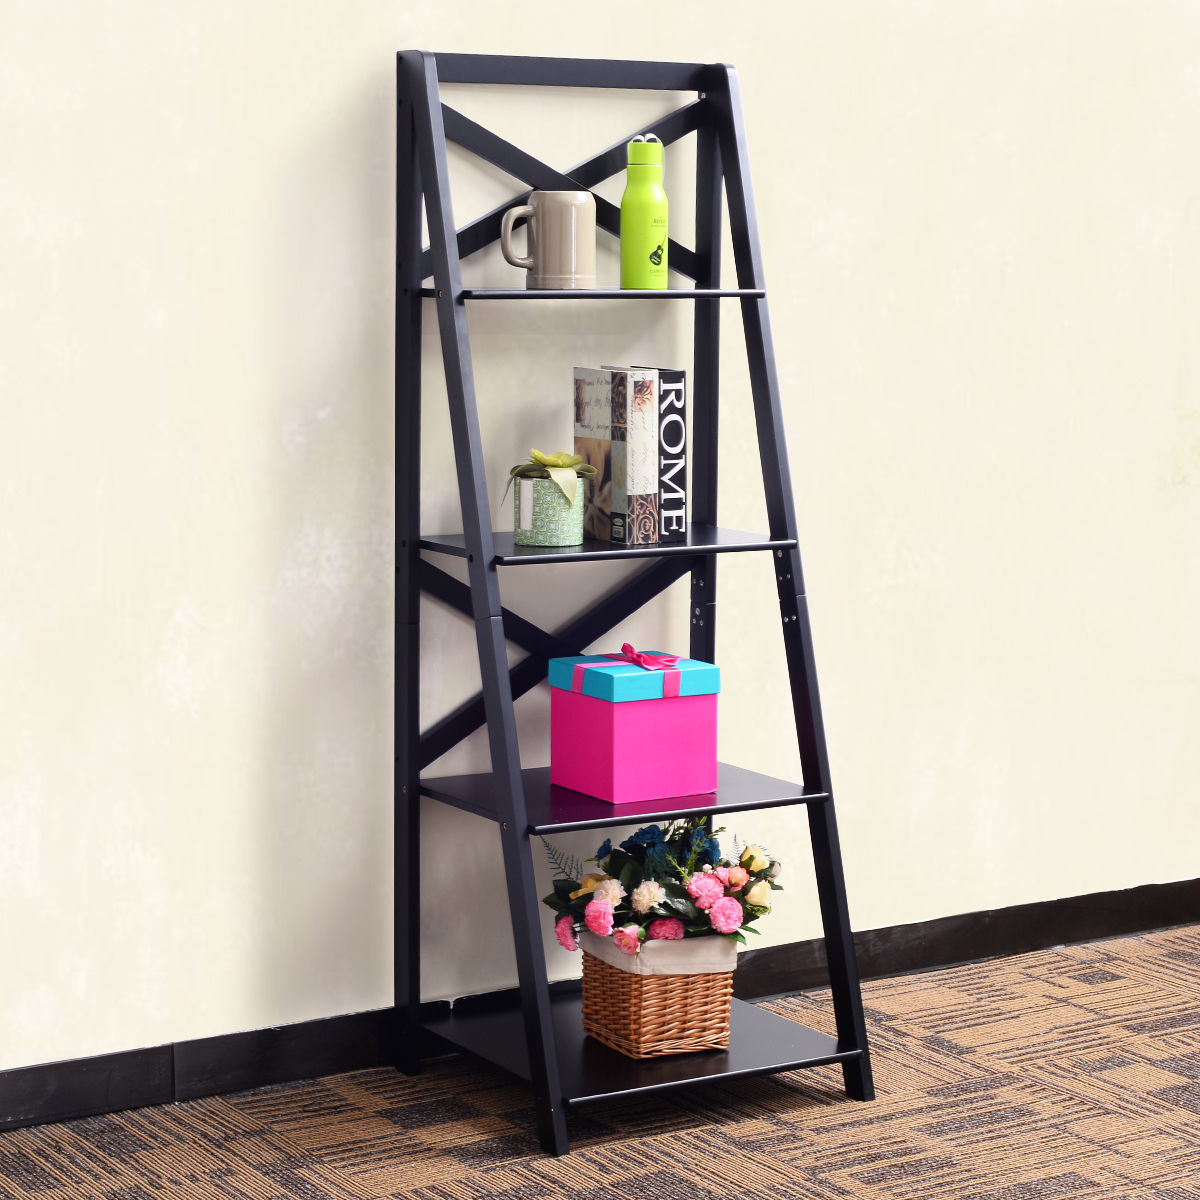 Charmant Costway 4 Tier Ladder Shelf Bookshelf Bookcase Storage Display Leaning Home  Office Decor